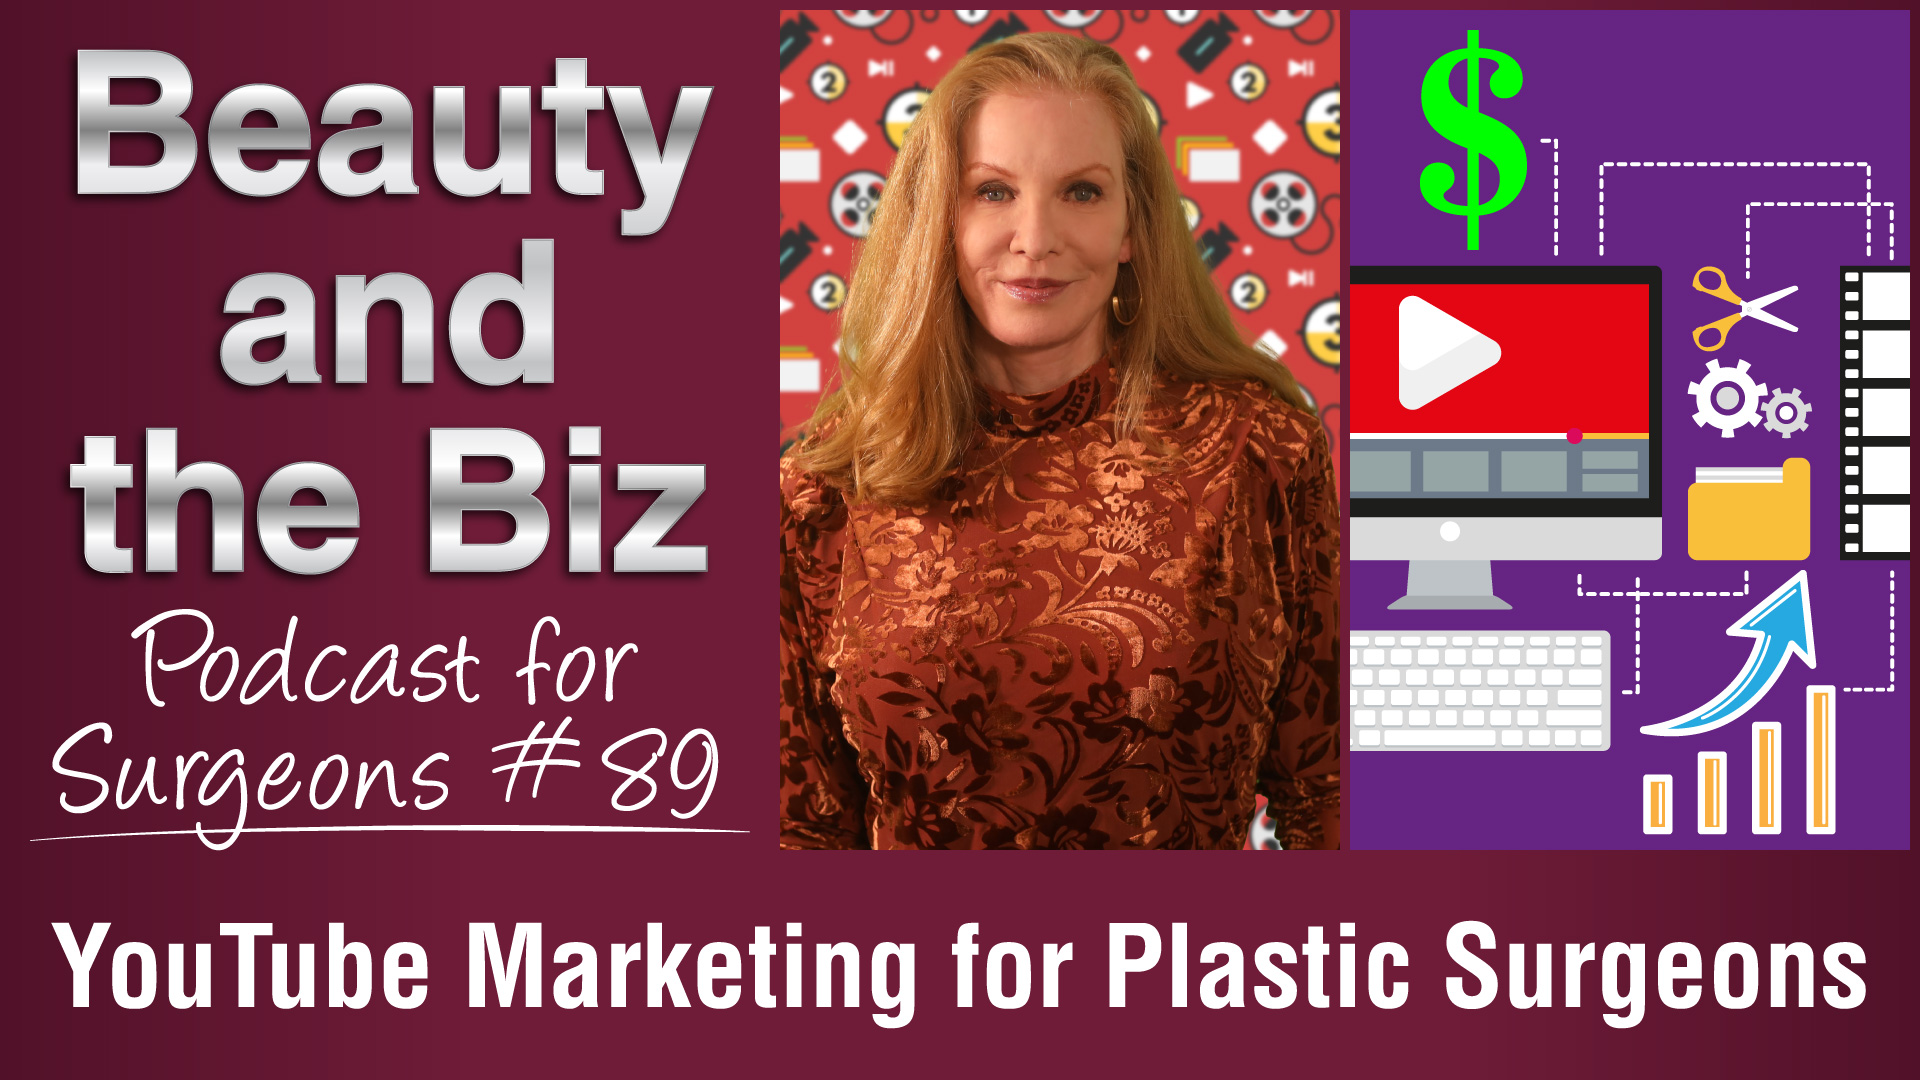 Ep.89: YouTube Marketing for Plastic Surgeons